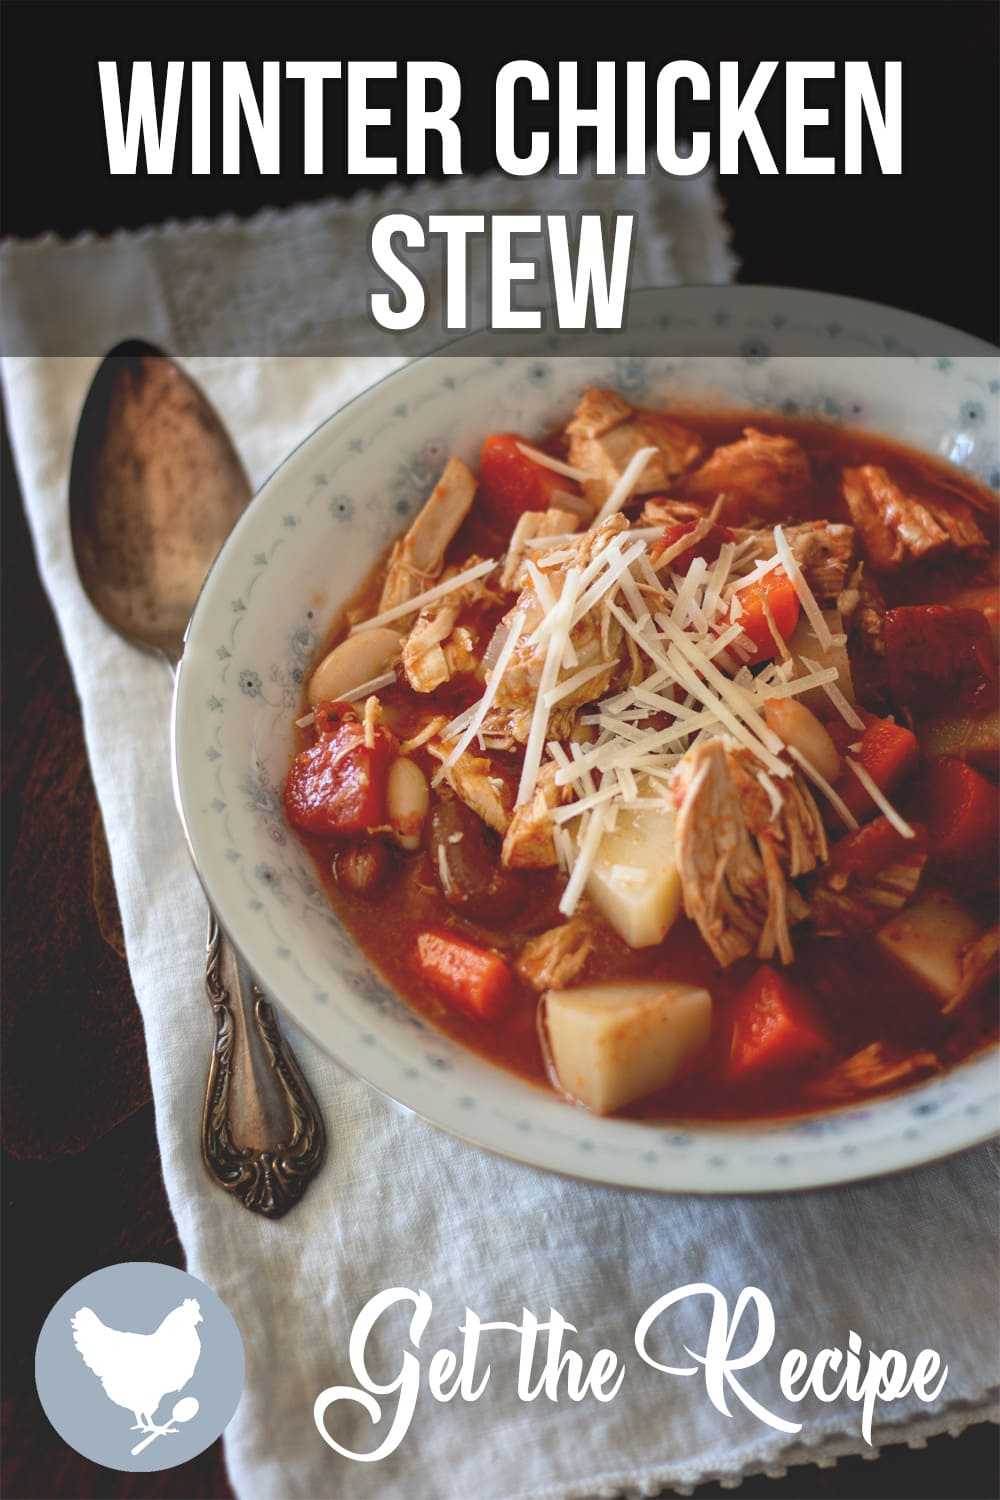 This is no ordinary chicken soup. The ingredients in this Winter Chicken Stew are so substantial, there's barely enough room for them in the pot.